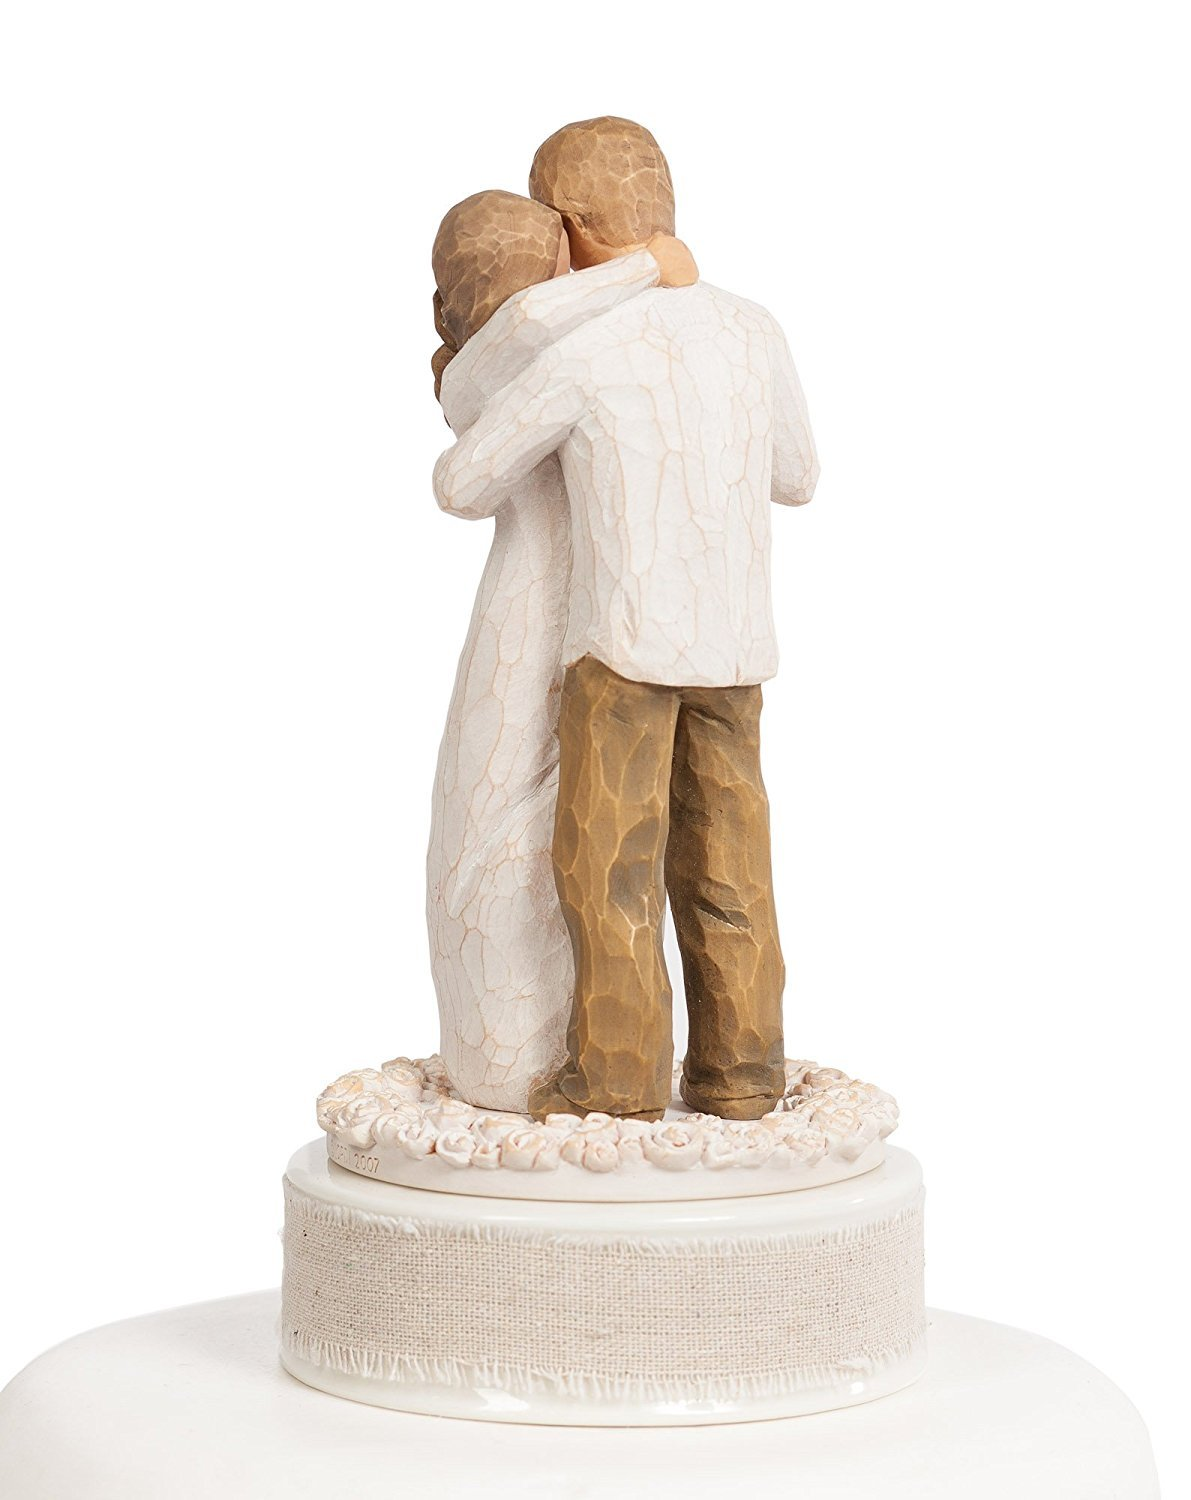 Personalized Willow Tree''Promise'' Wedding Cake Topper By Wedding Collectibles by DEMDACO - Home (Image #4)